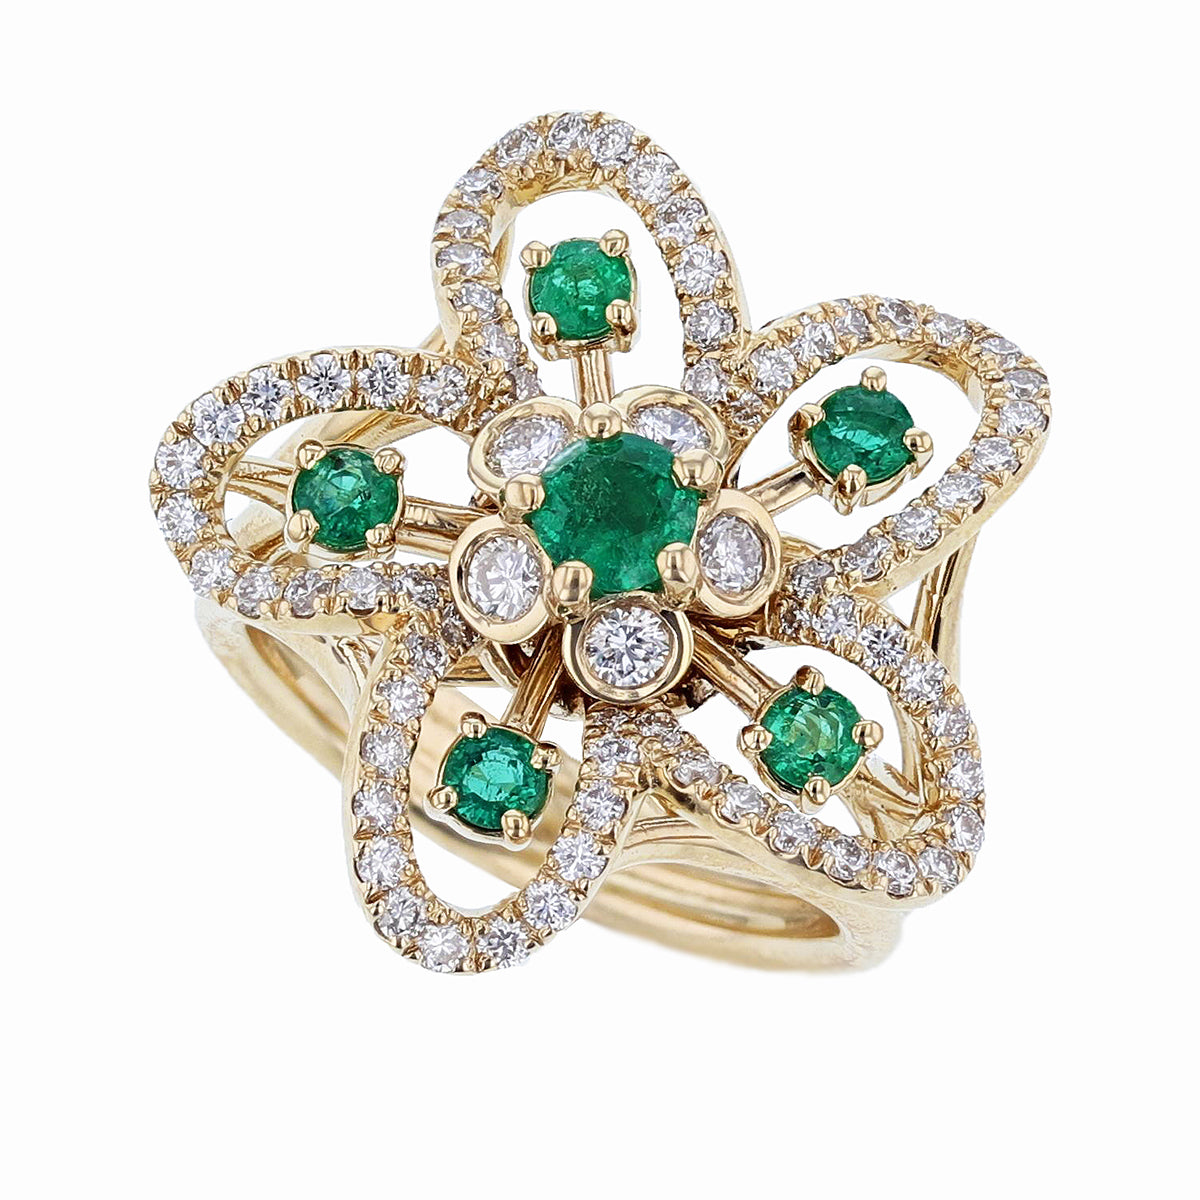 18K Yellow Gold Emerald and Diamond Flower Ring - Nazarelle